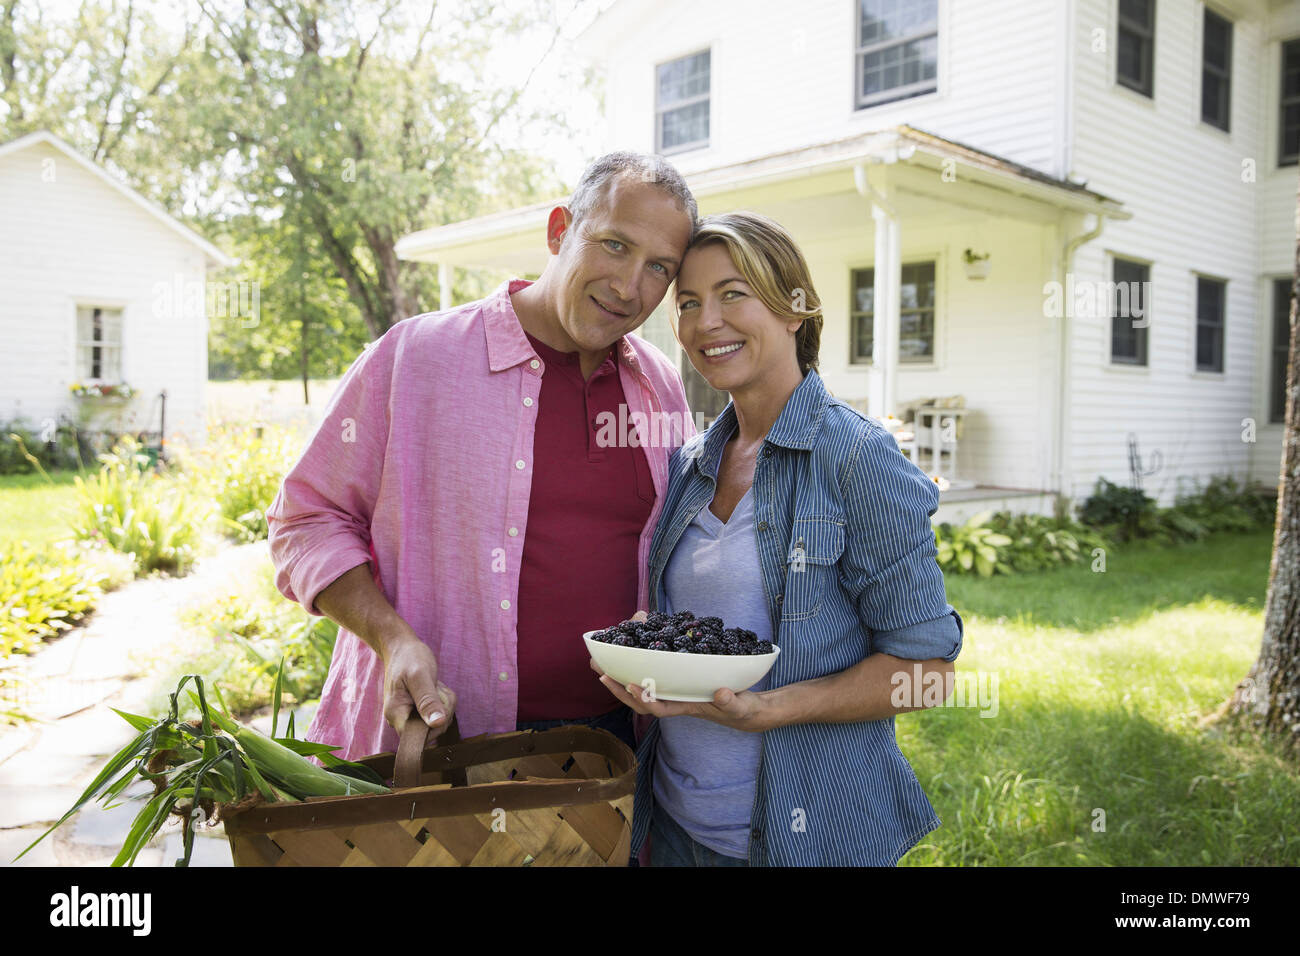 A family summer garing at a farm. A shared meal a homecoming. Stock Photo